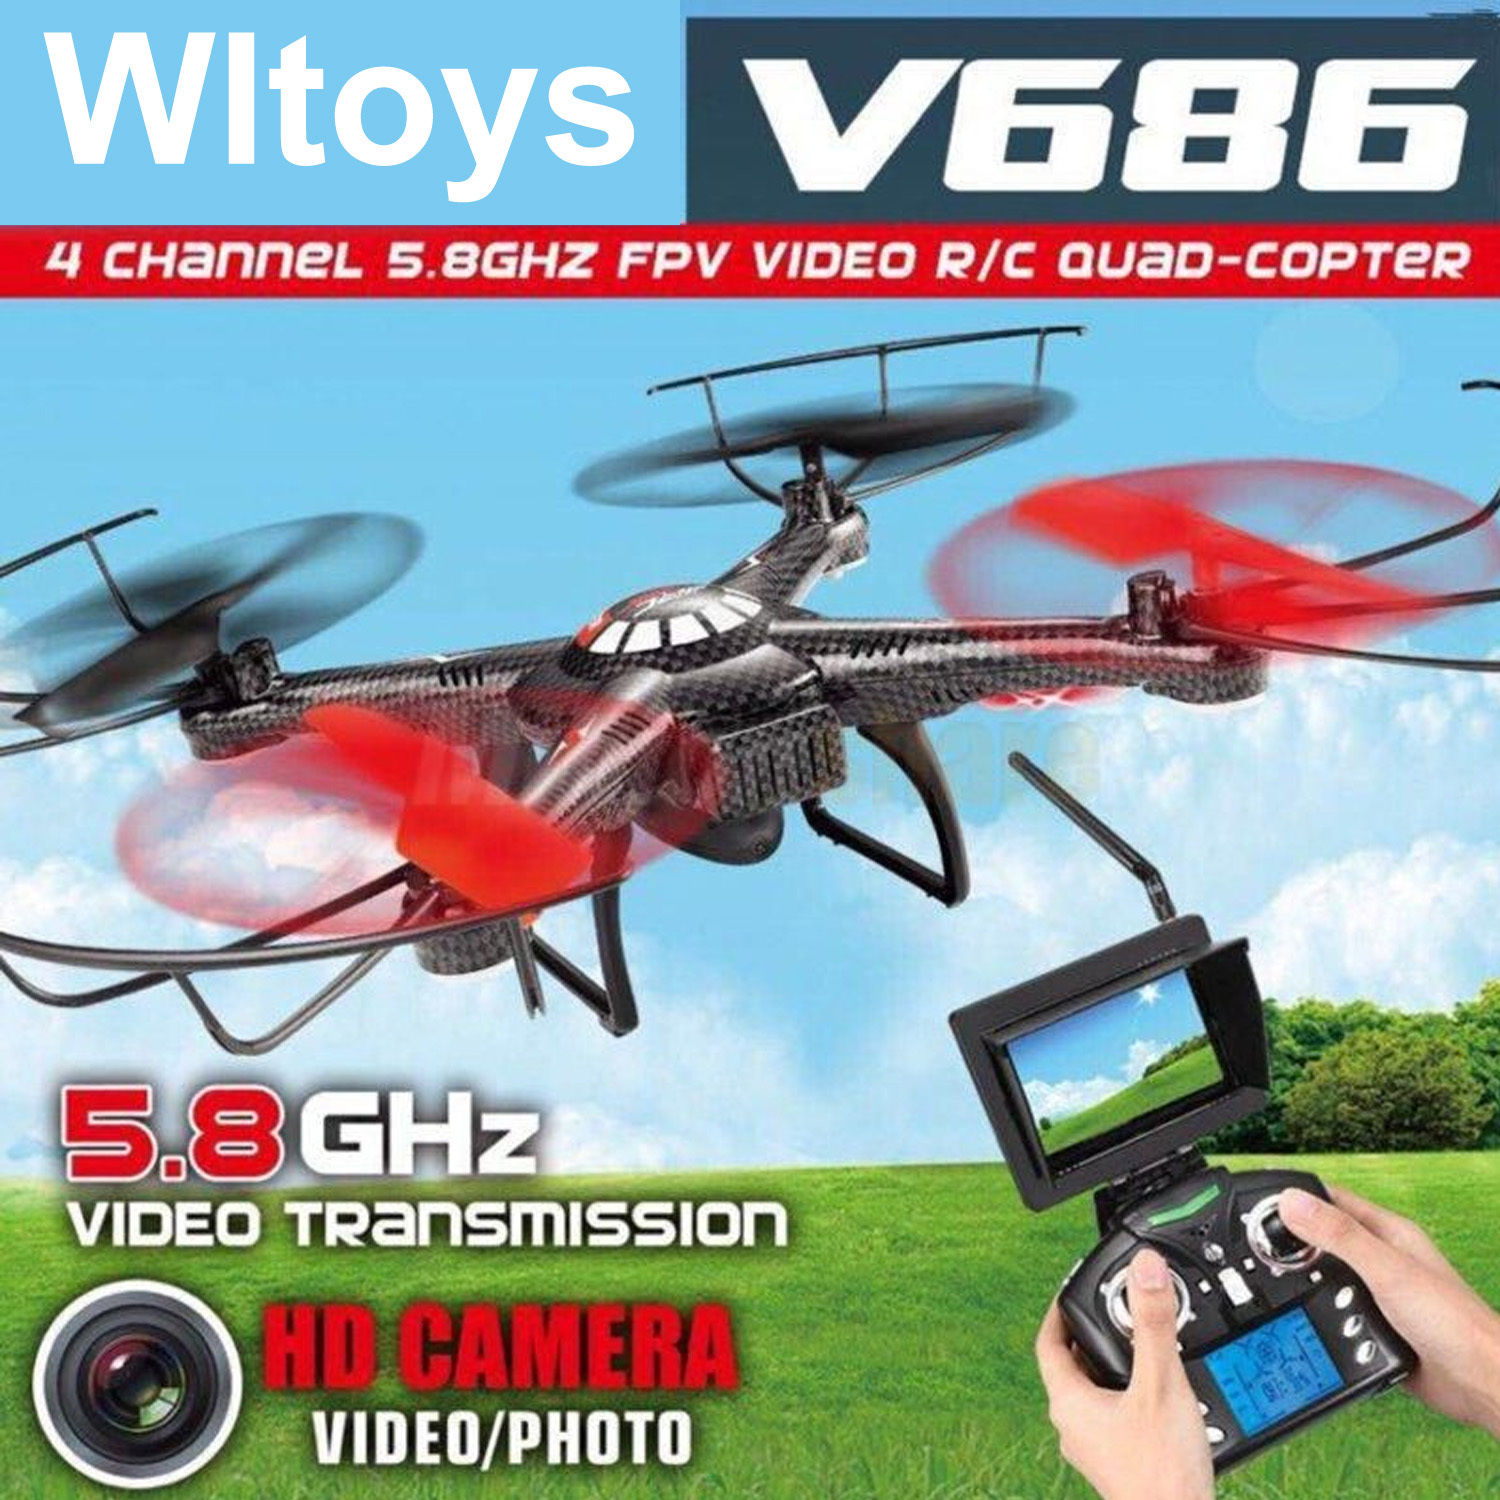 Hot Sale FPV RC Drones With Camera HD Professional Dron Quadcopters Remote Control Flying Camera Toy Helicopter Wltoys V686